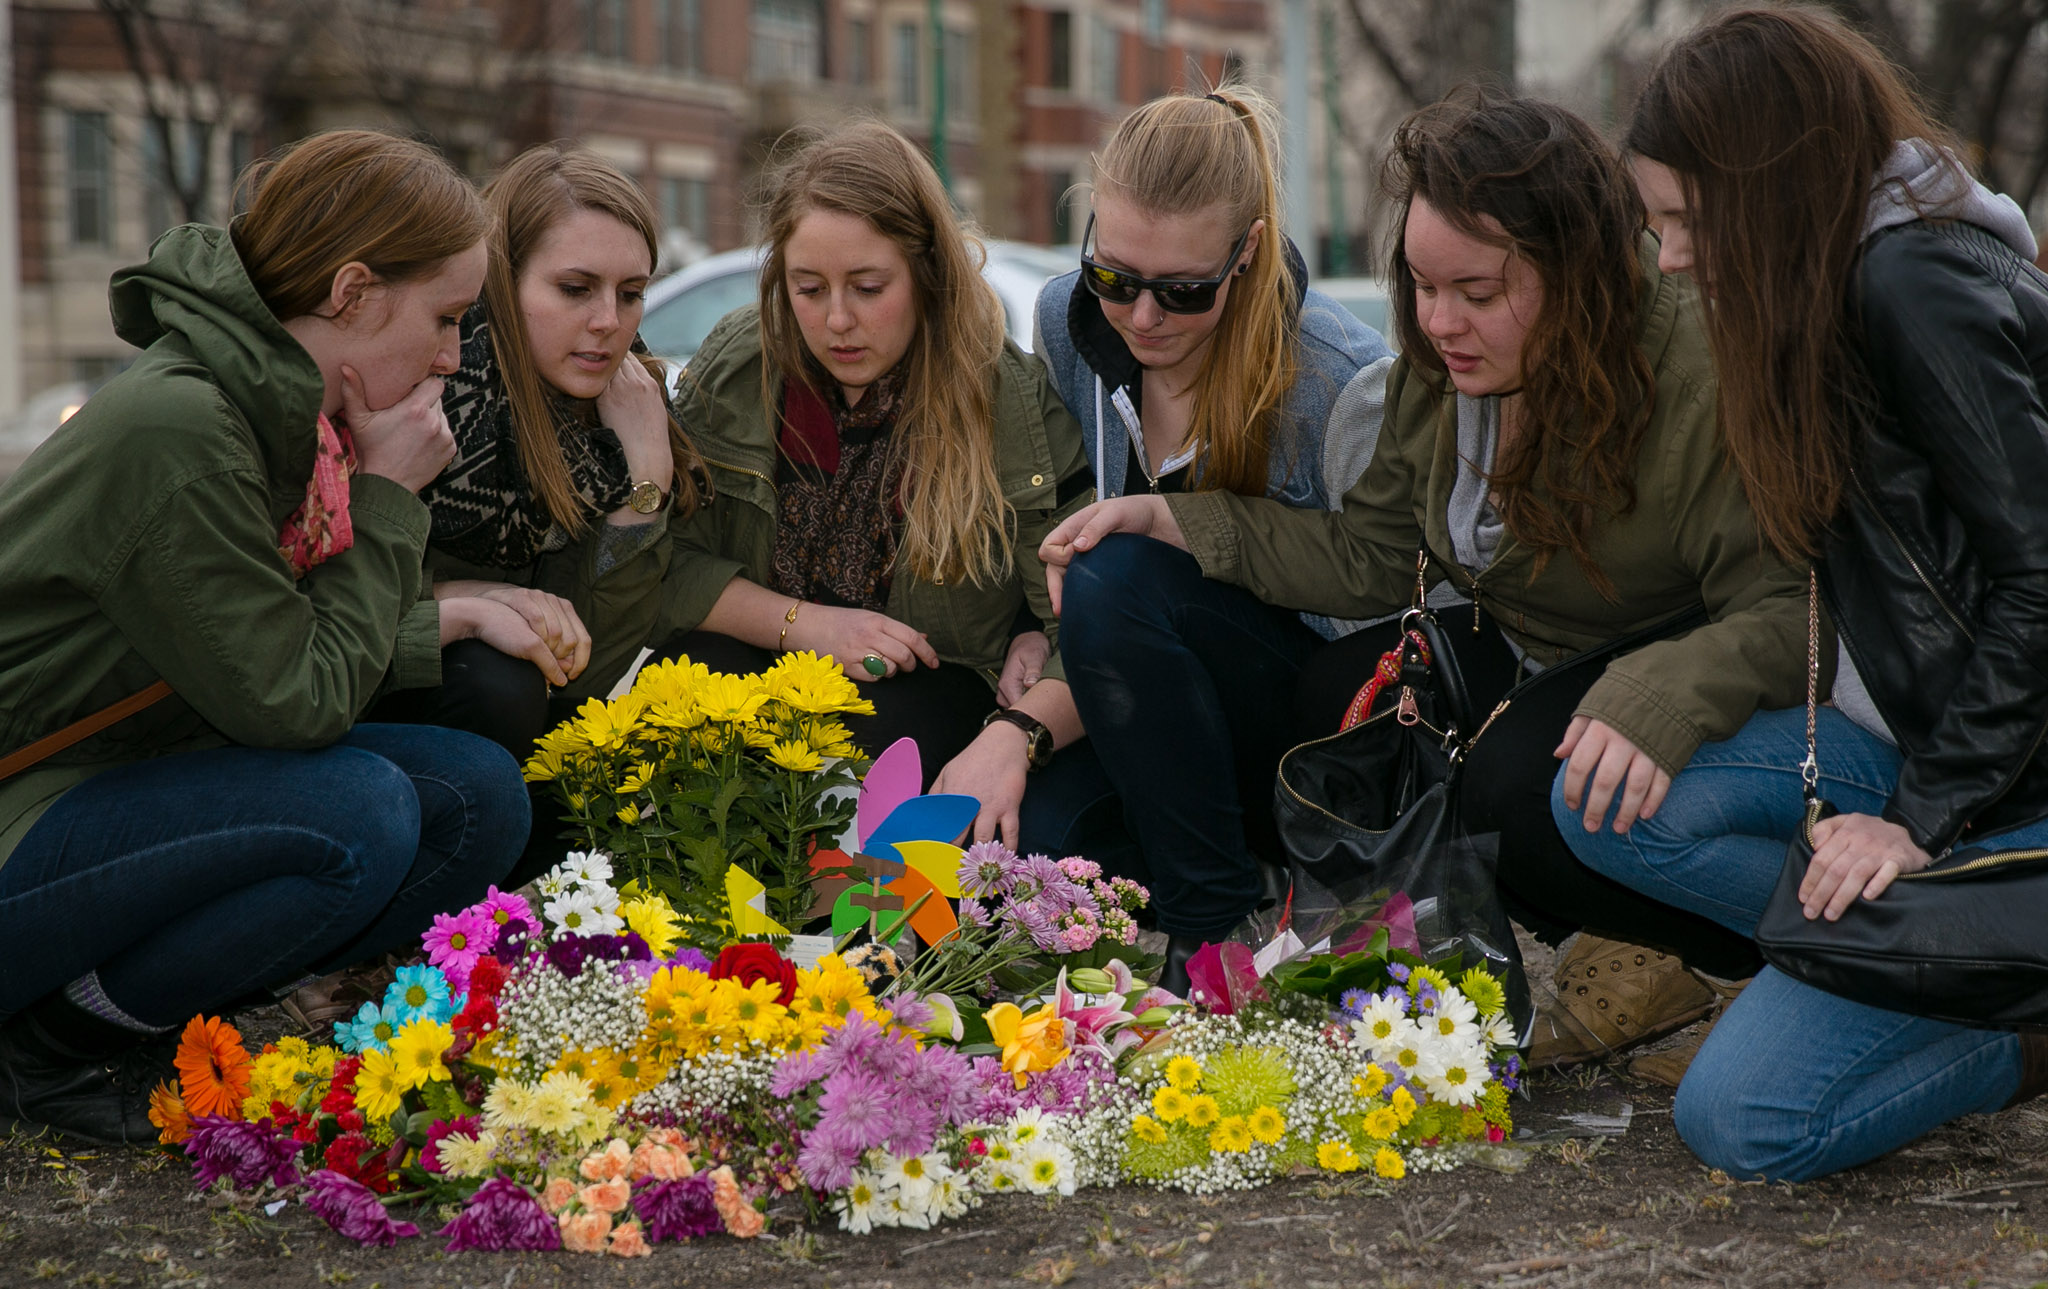 Kayla Prokopchuk (third from left) is surrounded by childhood friends of Amy Gilbert at a memorial of flowers on Broadway at Donald Street. Gilbert, 23, was struck and killed at the intersection Saturday afternoon. The group of friends have known each other since Grade 7. From left to right, Megan Dudeck, Michelle Ewacha, Kayla Prokopchuk, Meredith Stoesz, April Saurette, Angela Harris.